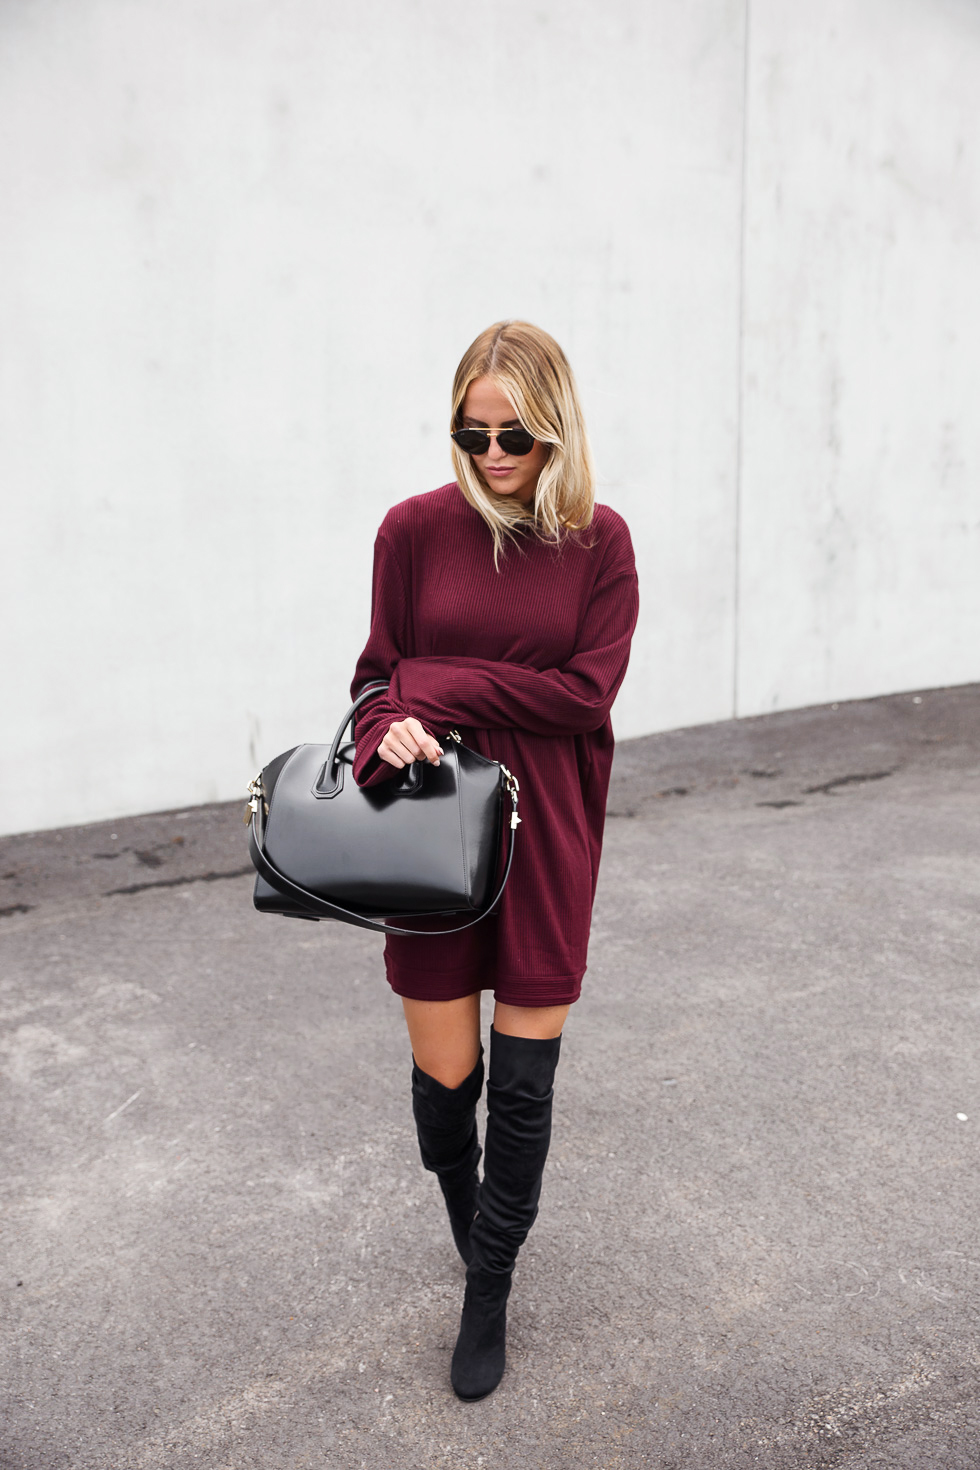 Thigh high boots are the perfect match to an oversized sweater dress, like this one worn by Kristin Sundberg. This look is cute and cosy, and ideal for those cooler days this spring! Boots: Nelly, Dress:Na-kd, Bag: Givenchy.